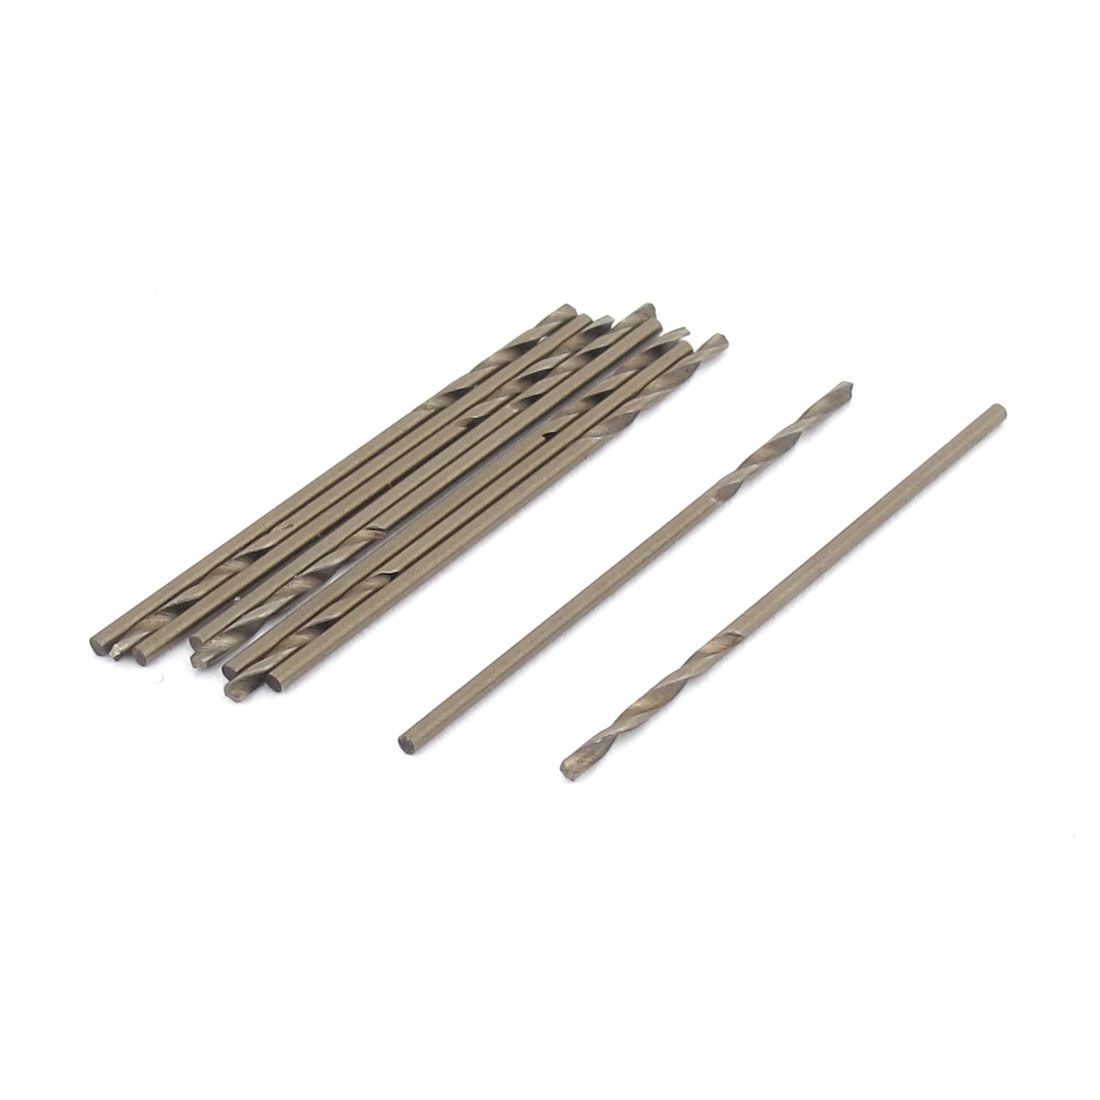 Round Shank 1.0mm Dia HSS-CO Drilling Twist Drill Bit 10pcs for Stainless Steel